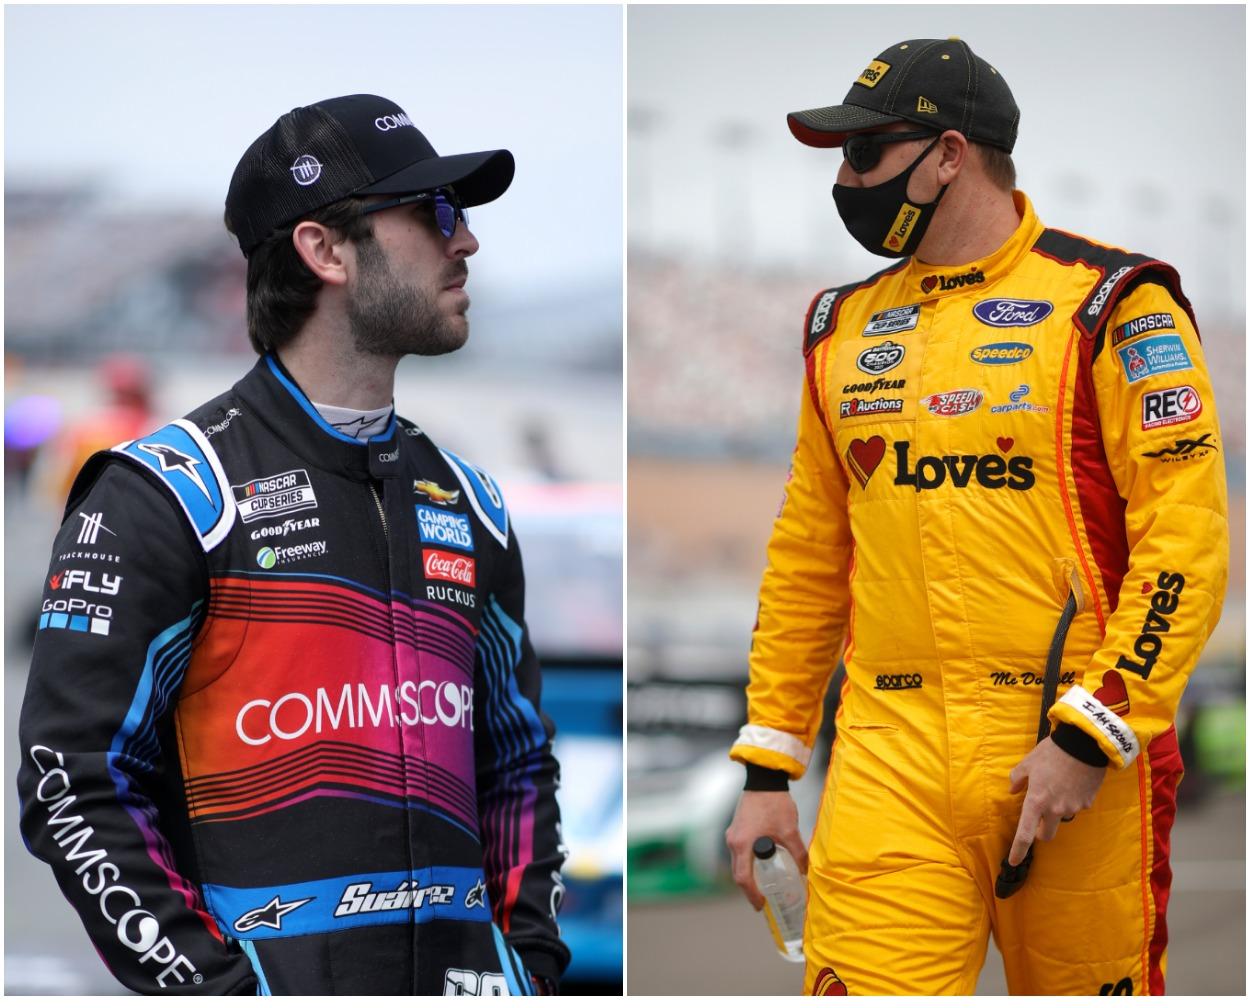 Daniel Suarez Doesn't Back Down and Sends Direct Message to Michael McDowell in Escalating Feud After Sonoma: 'Not Taking BS'